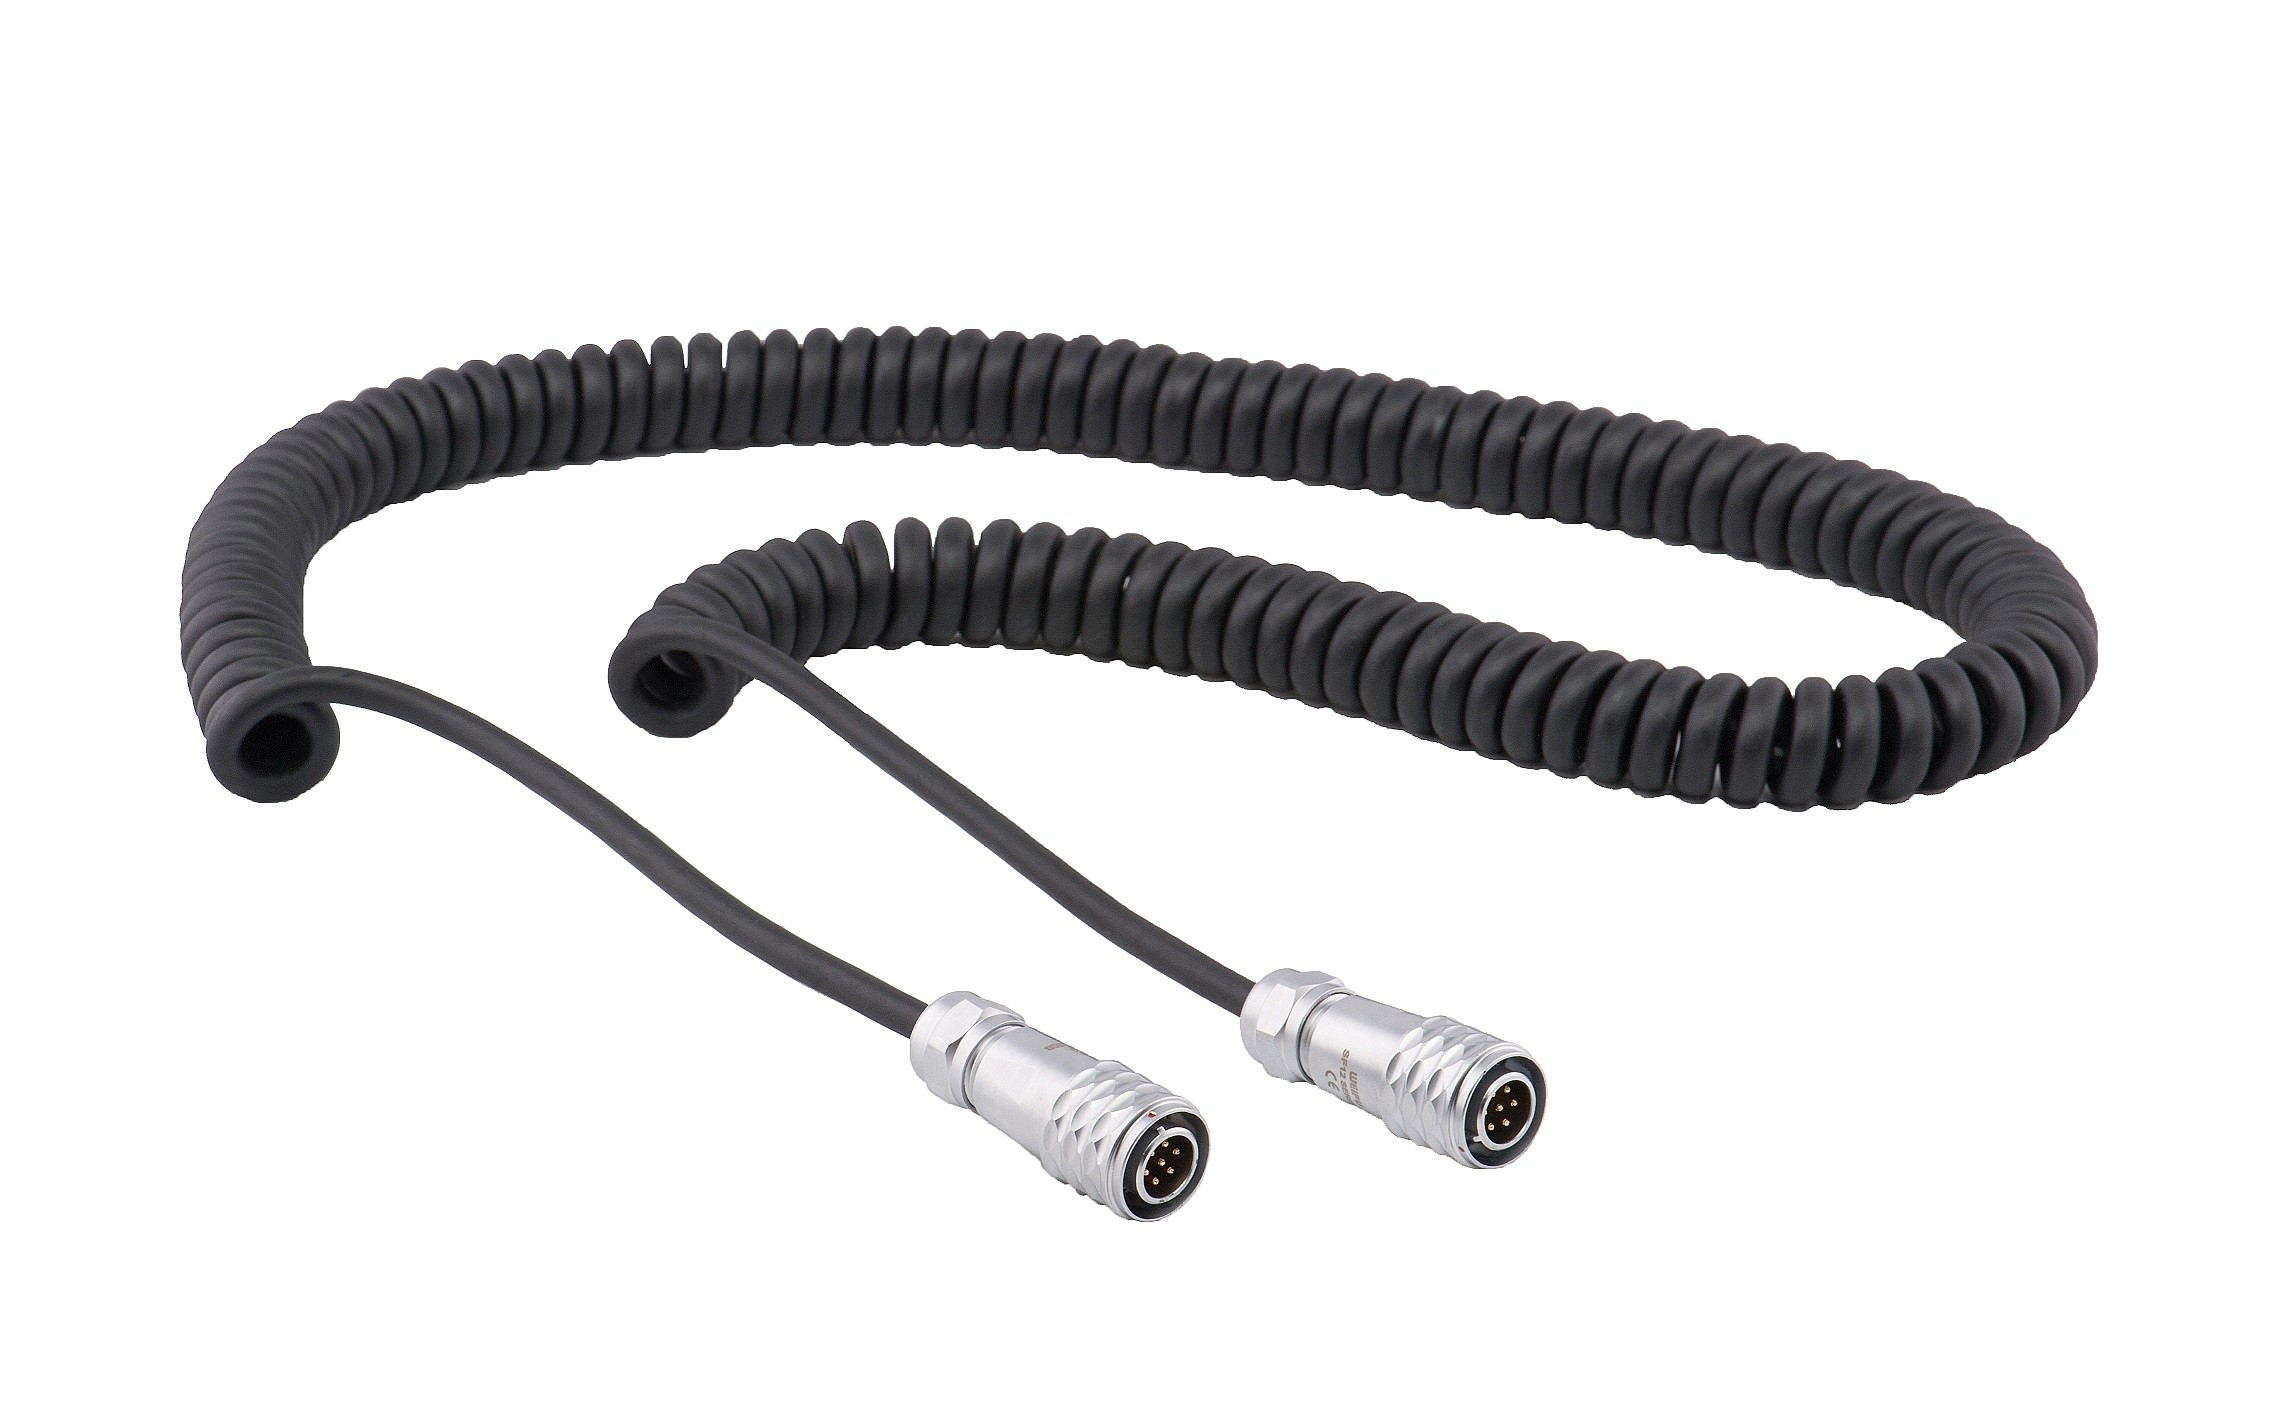 SPIRAL CABLE W/CONNECTOR 7PIN 1,20MT